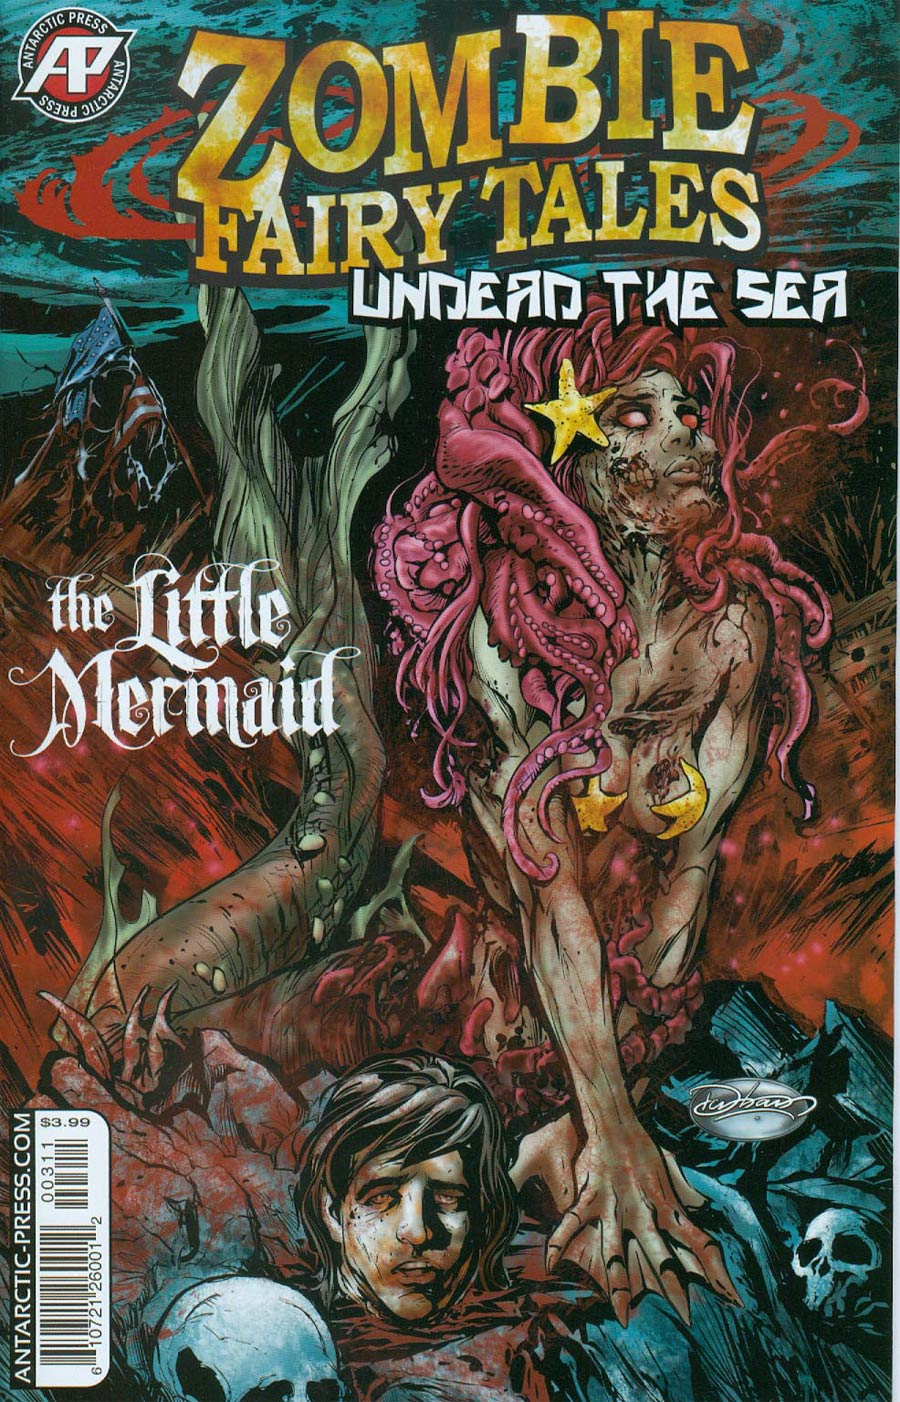 Zombie Fairy Tales Undead The Sea